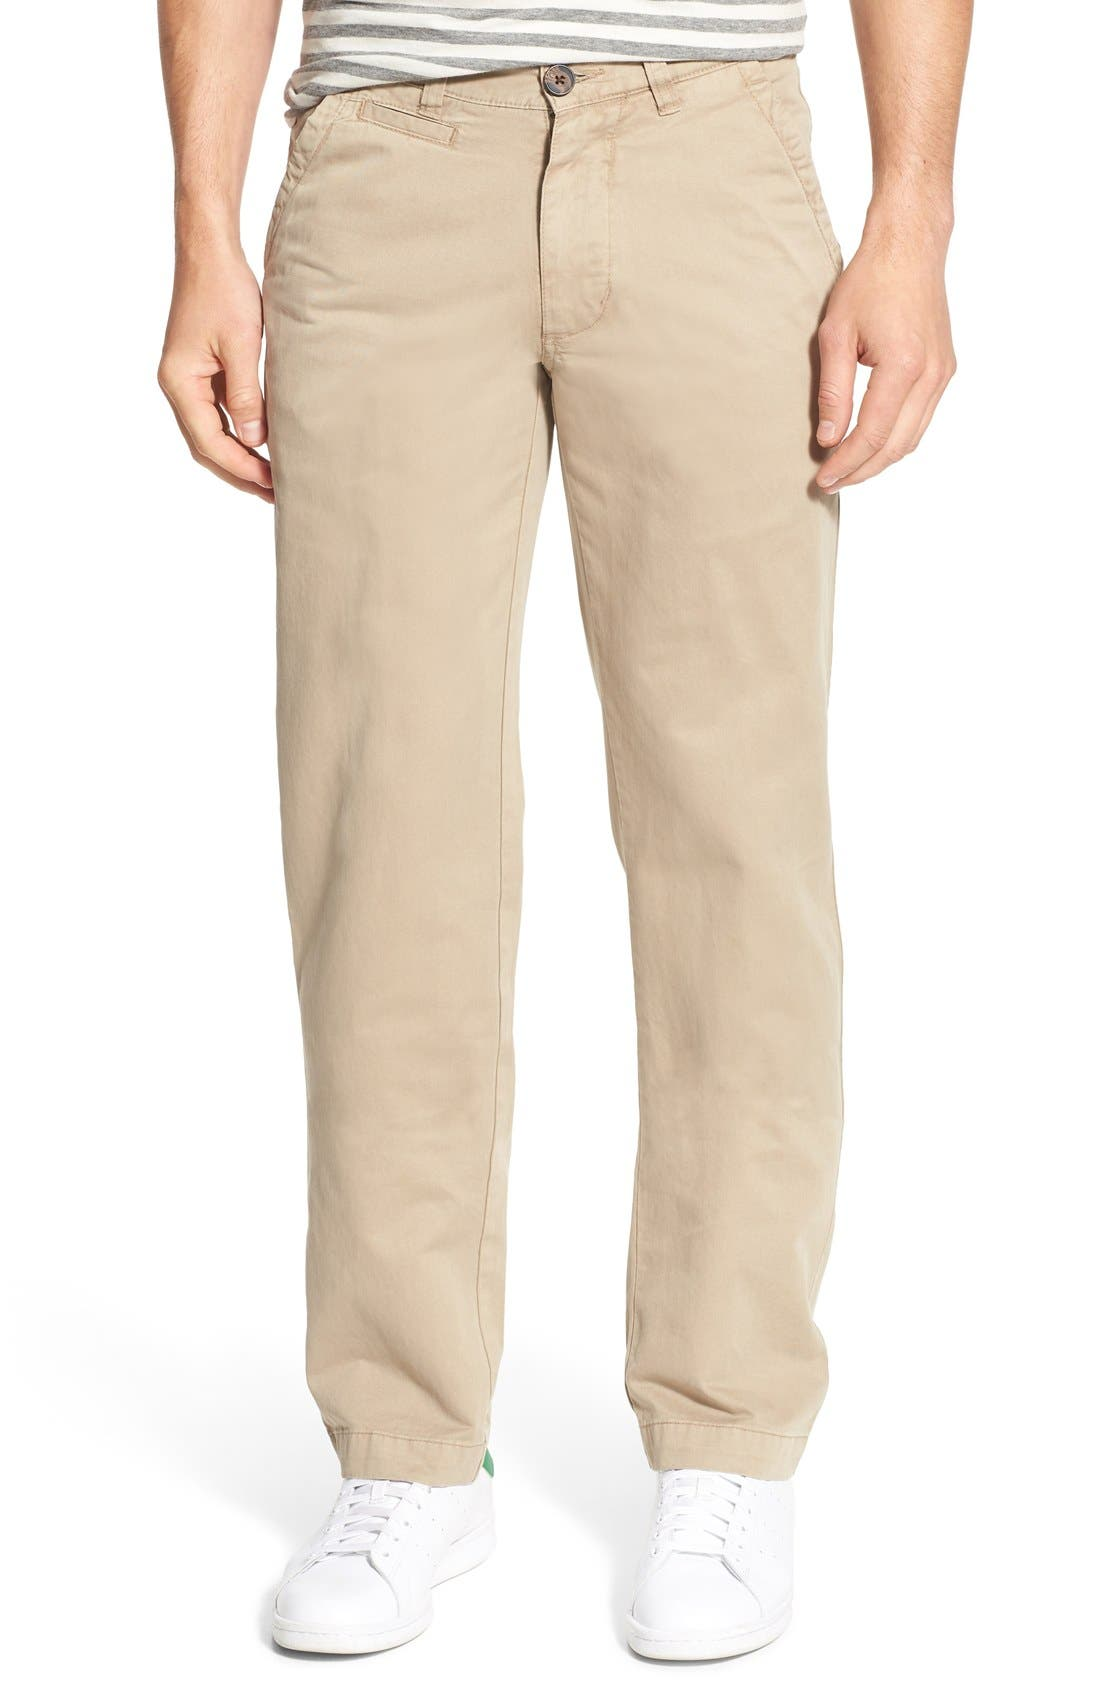 'Sahara' Trim Fit Vintage Washed Twill Chinos,                             Main thumbnail 3, color,